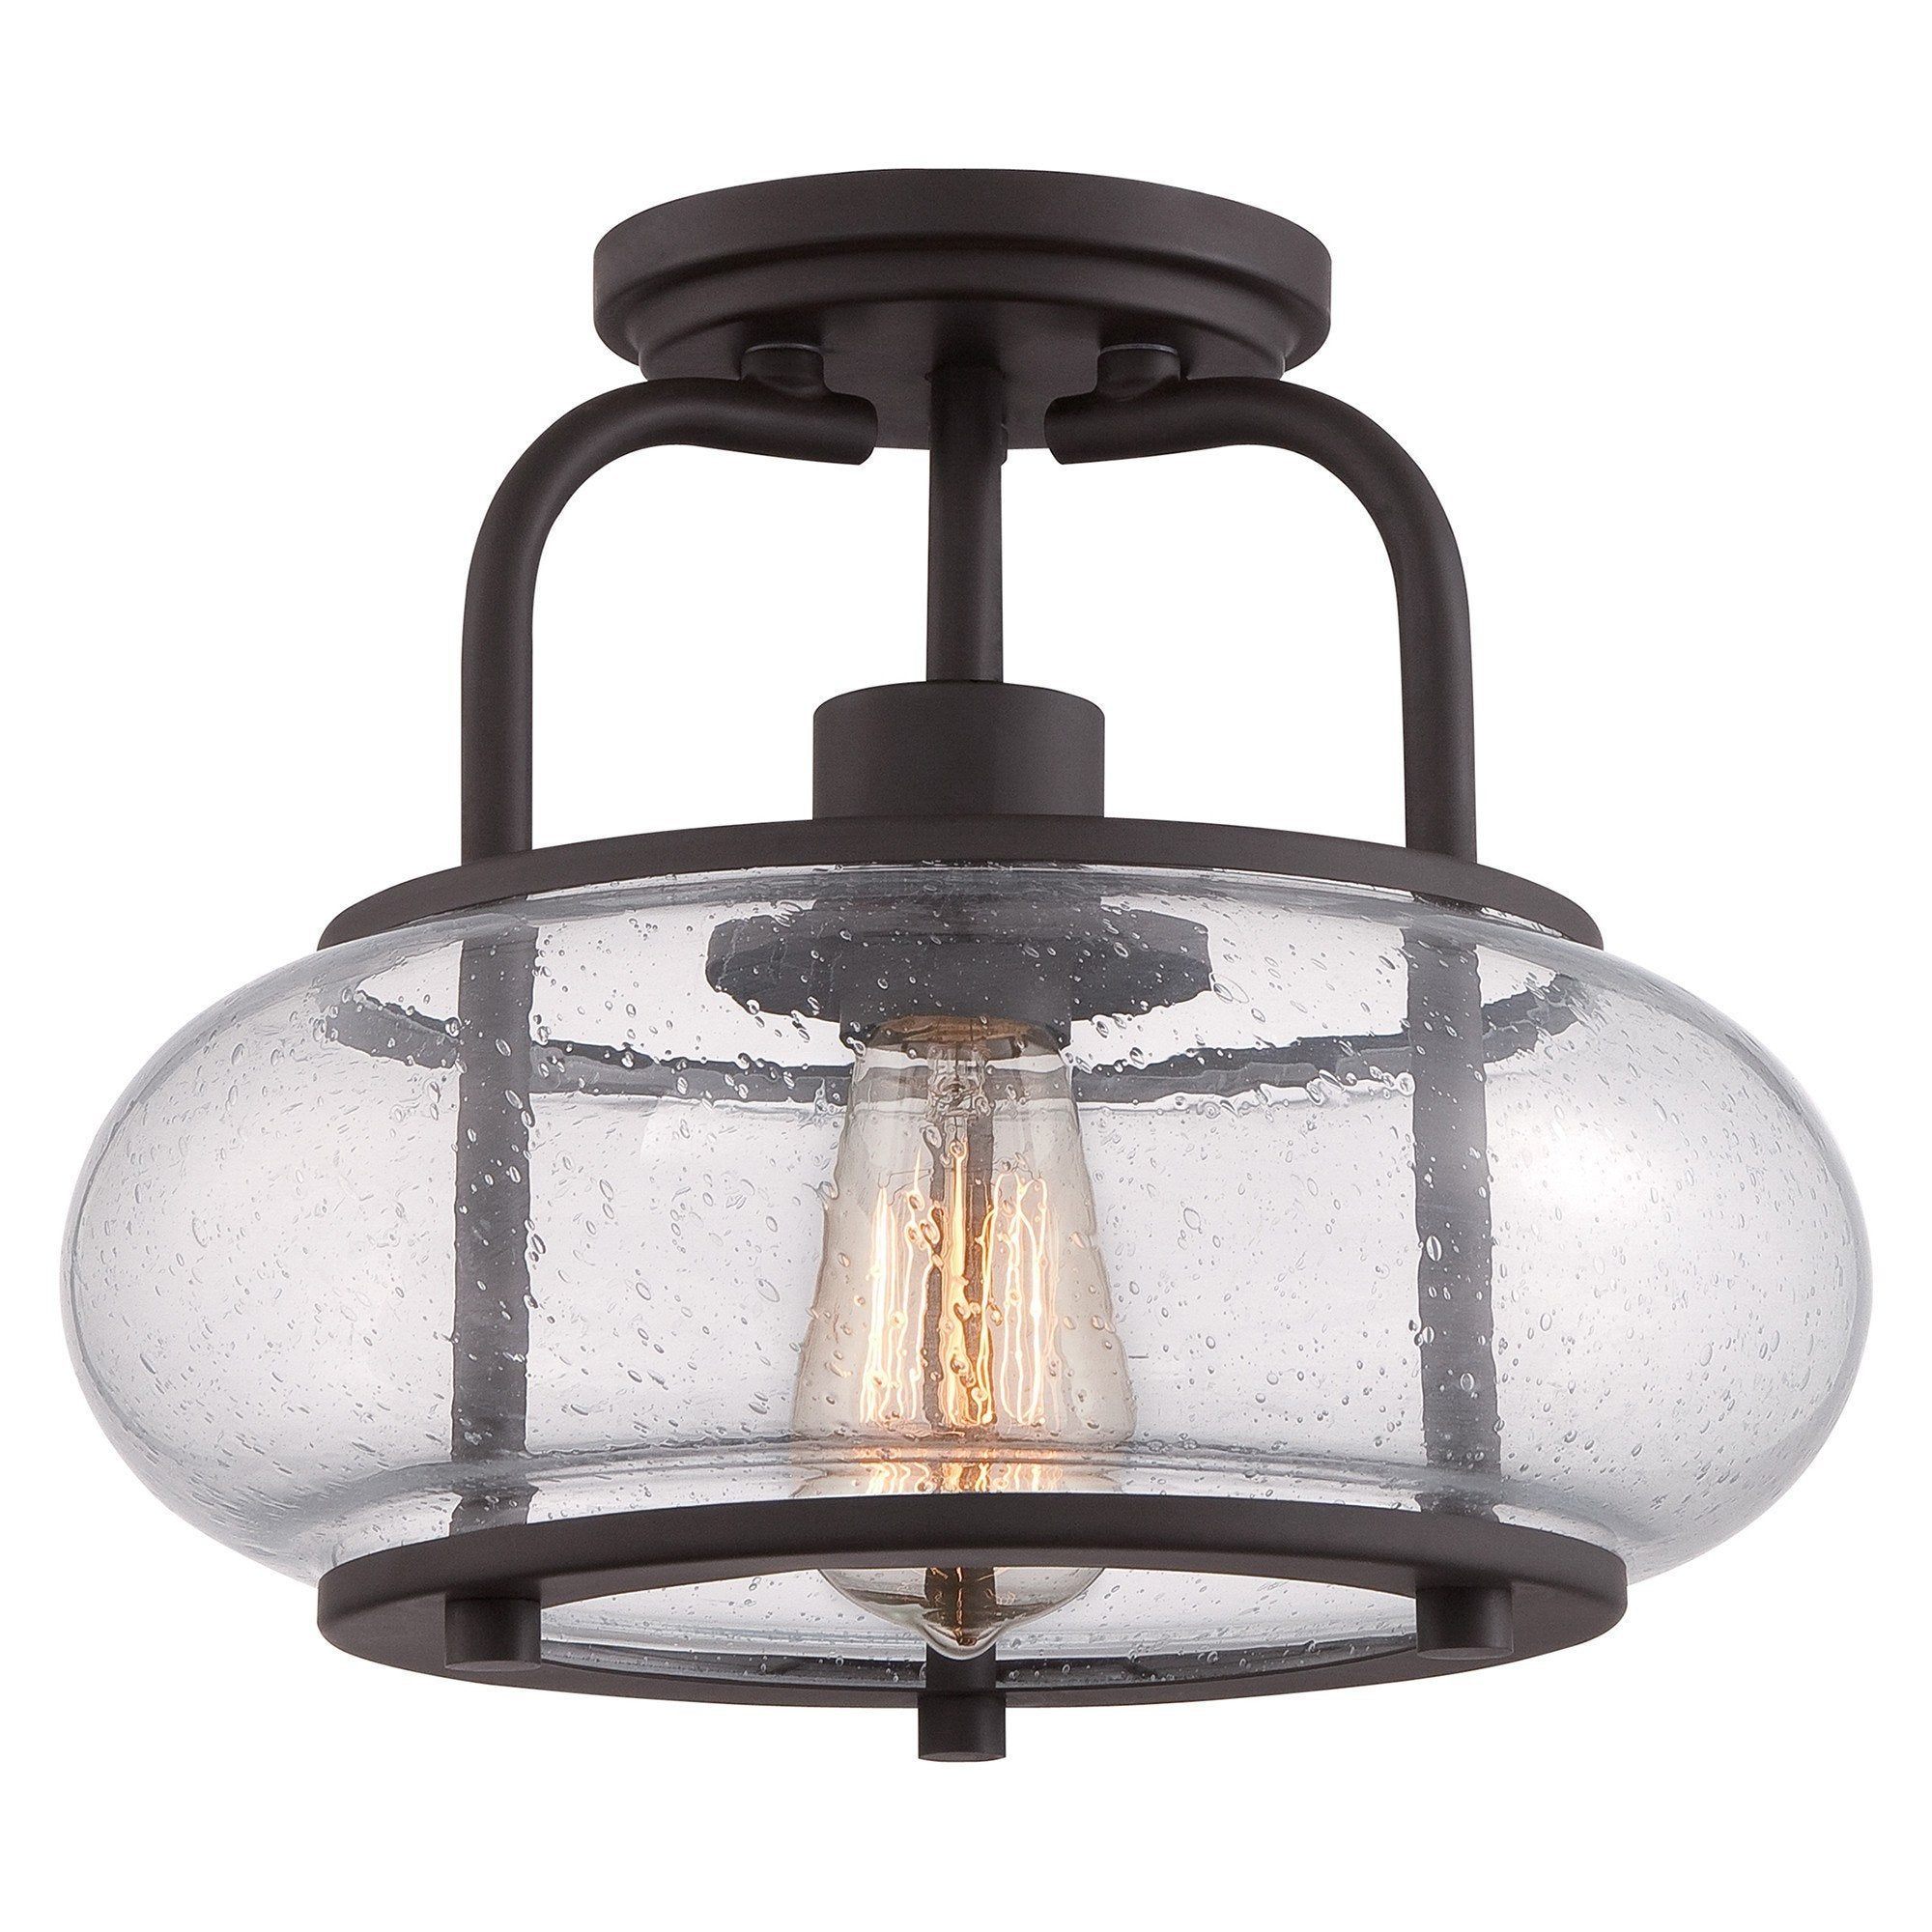 Quoizel Trilogy Small Semi-Flush - London Lighting - 1